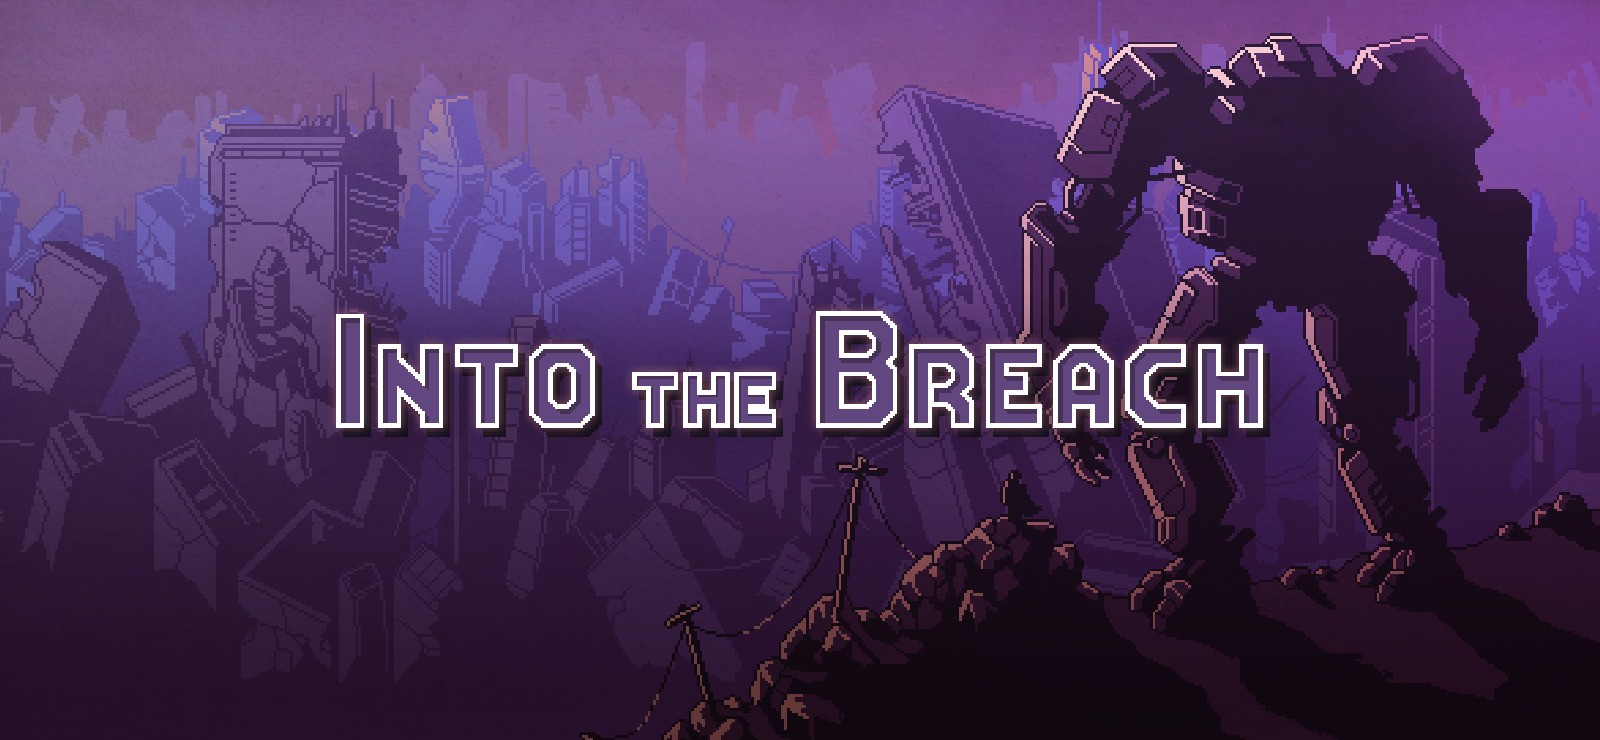 Into the Breach gratuit sur Epic Games !